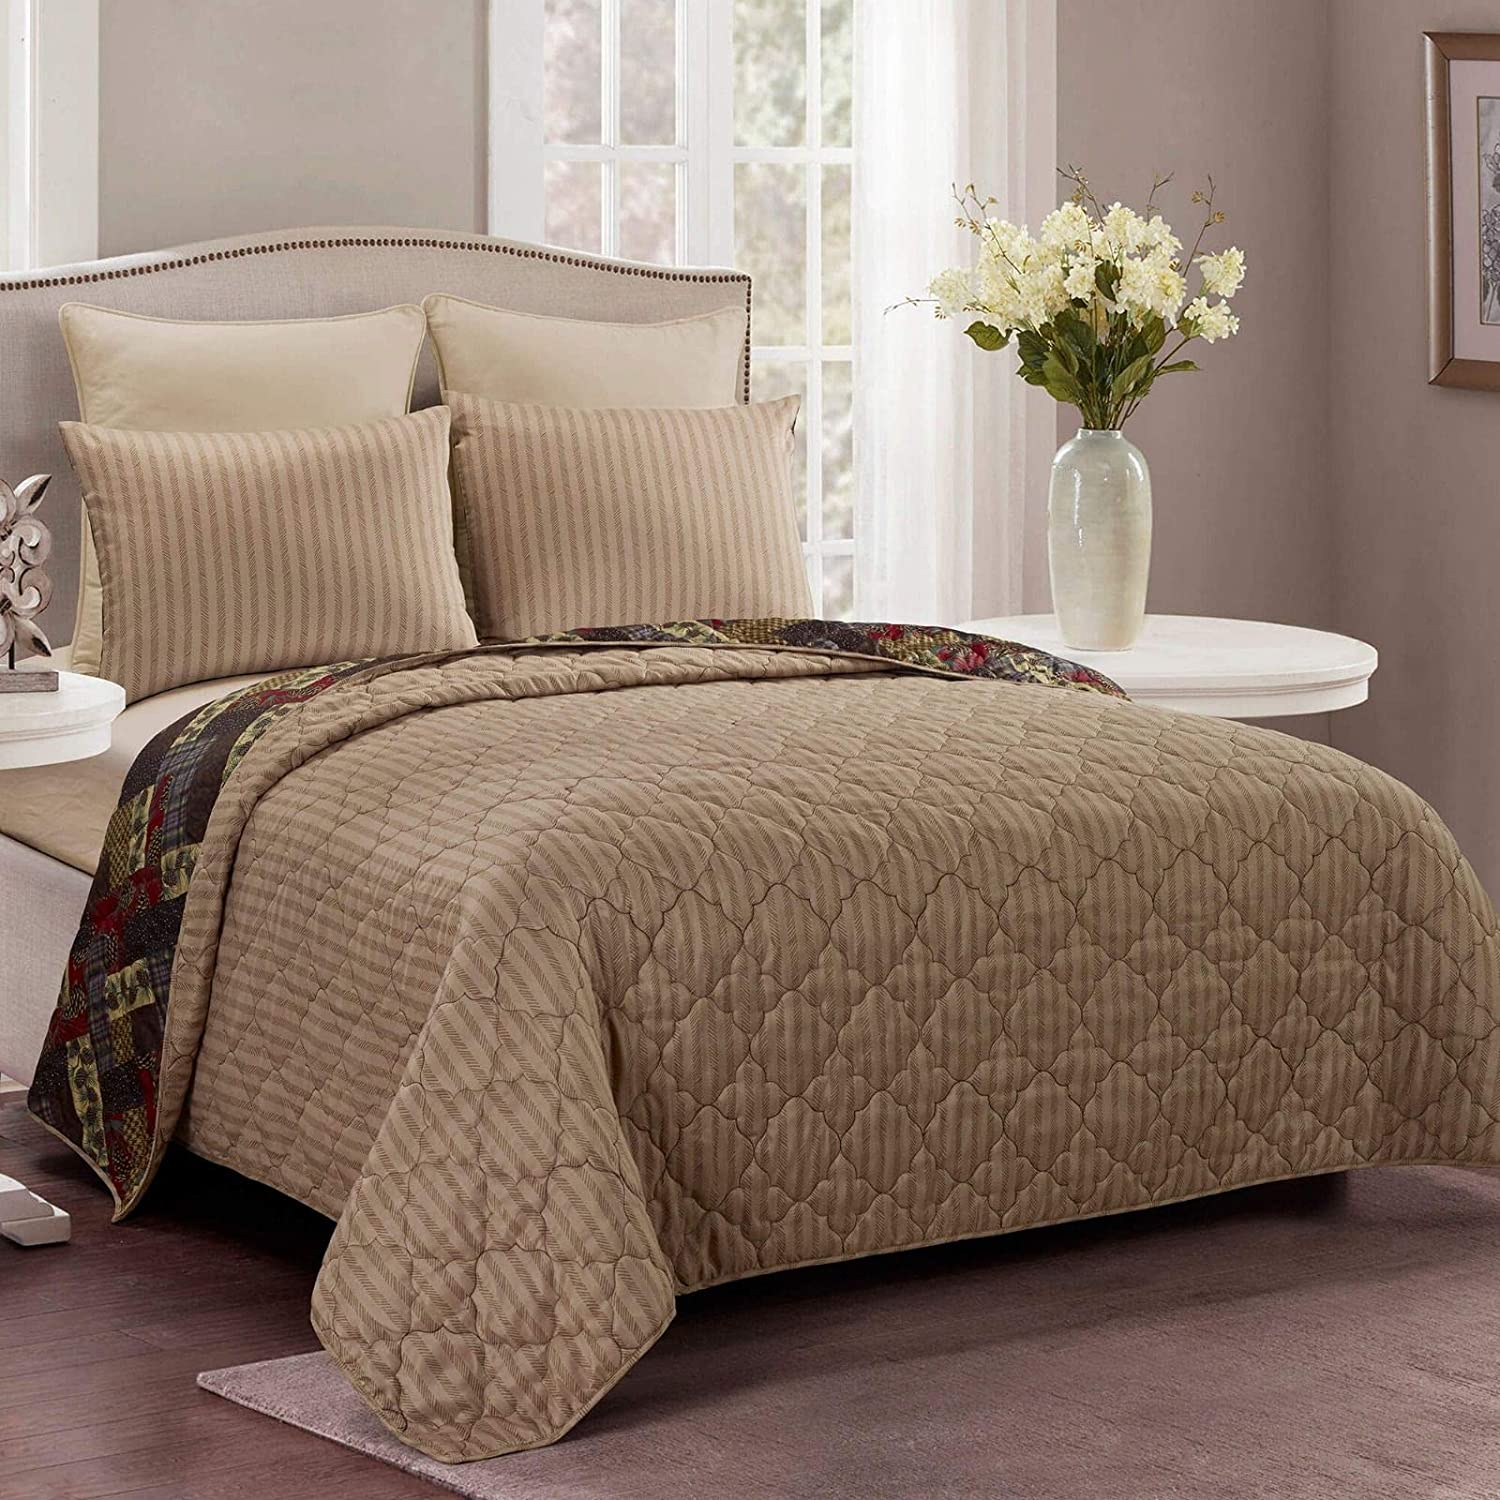 Machine Washable Hidden Valley Lodge Quilt Set with King Quilt and Two Standard Pillow Shams 3 Piece Donna Sharp King Bedding Set